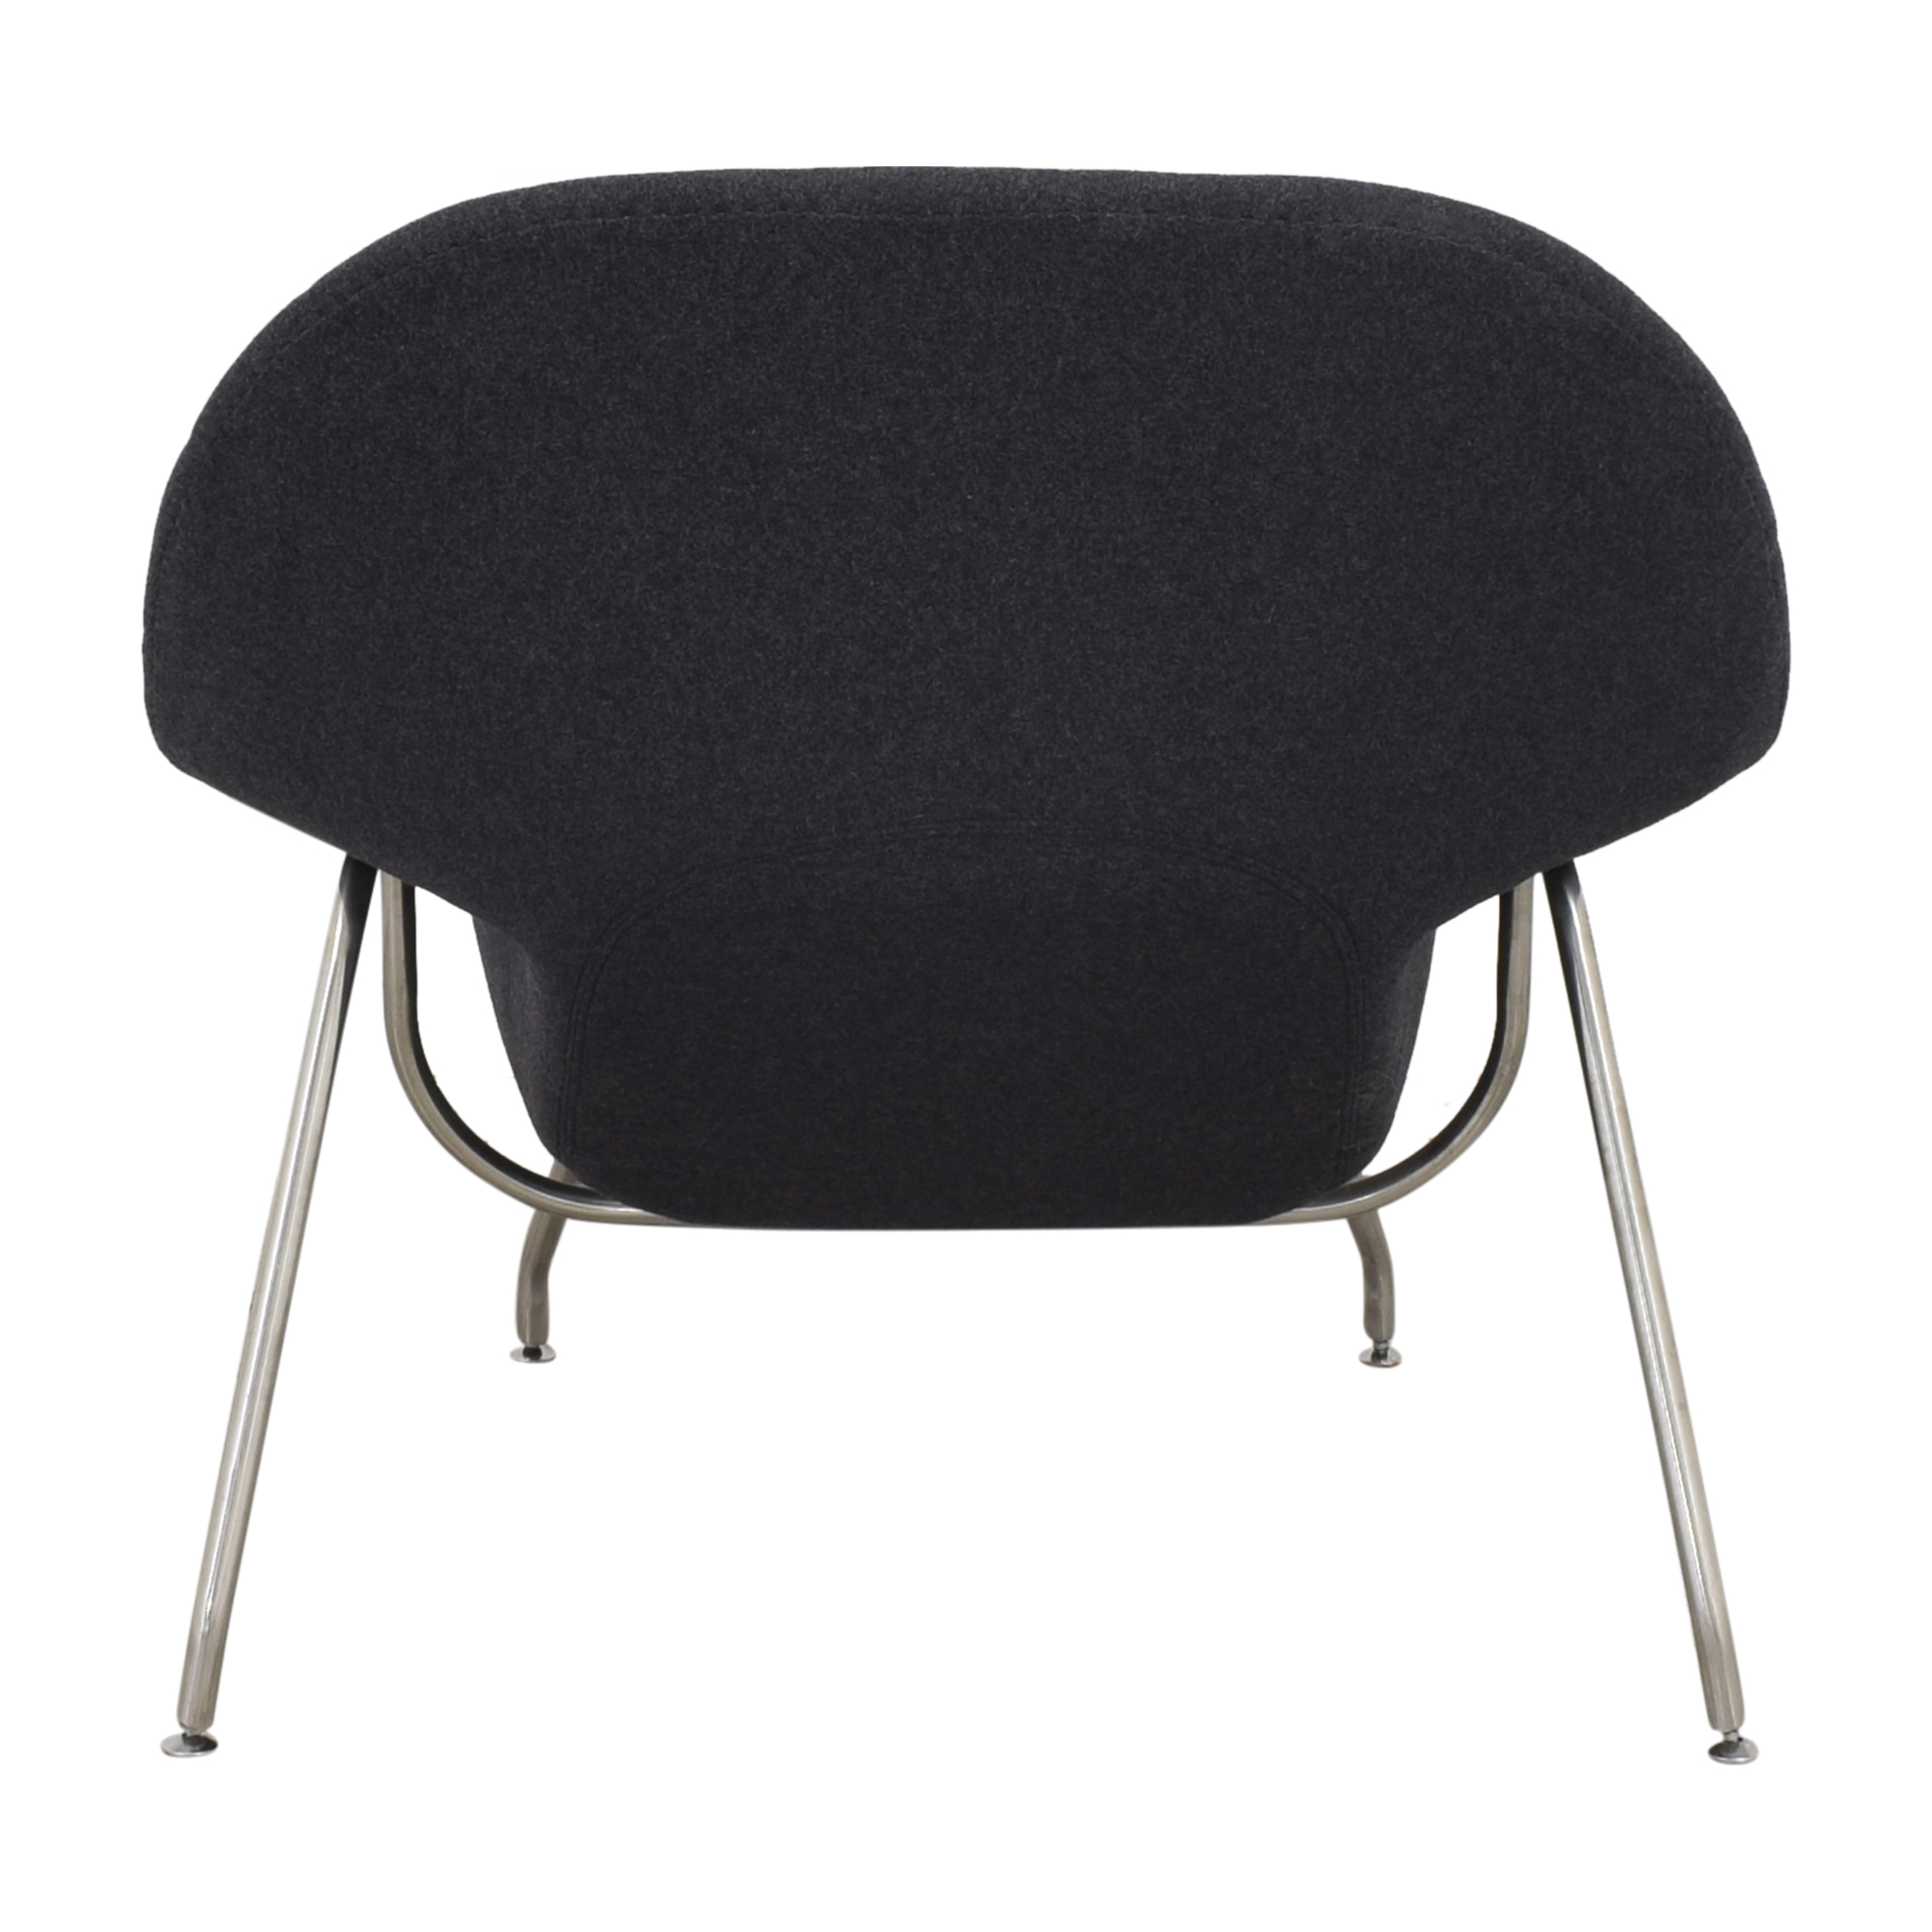 Womb-Style Replica Chair on sale